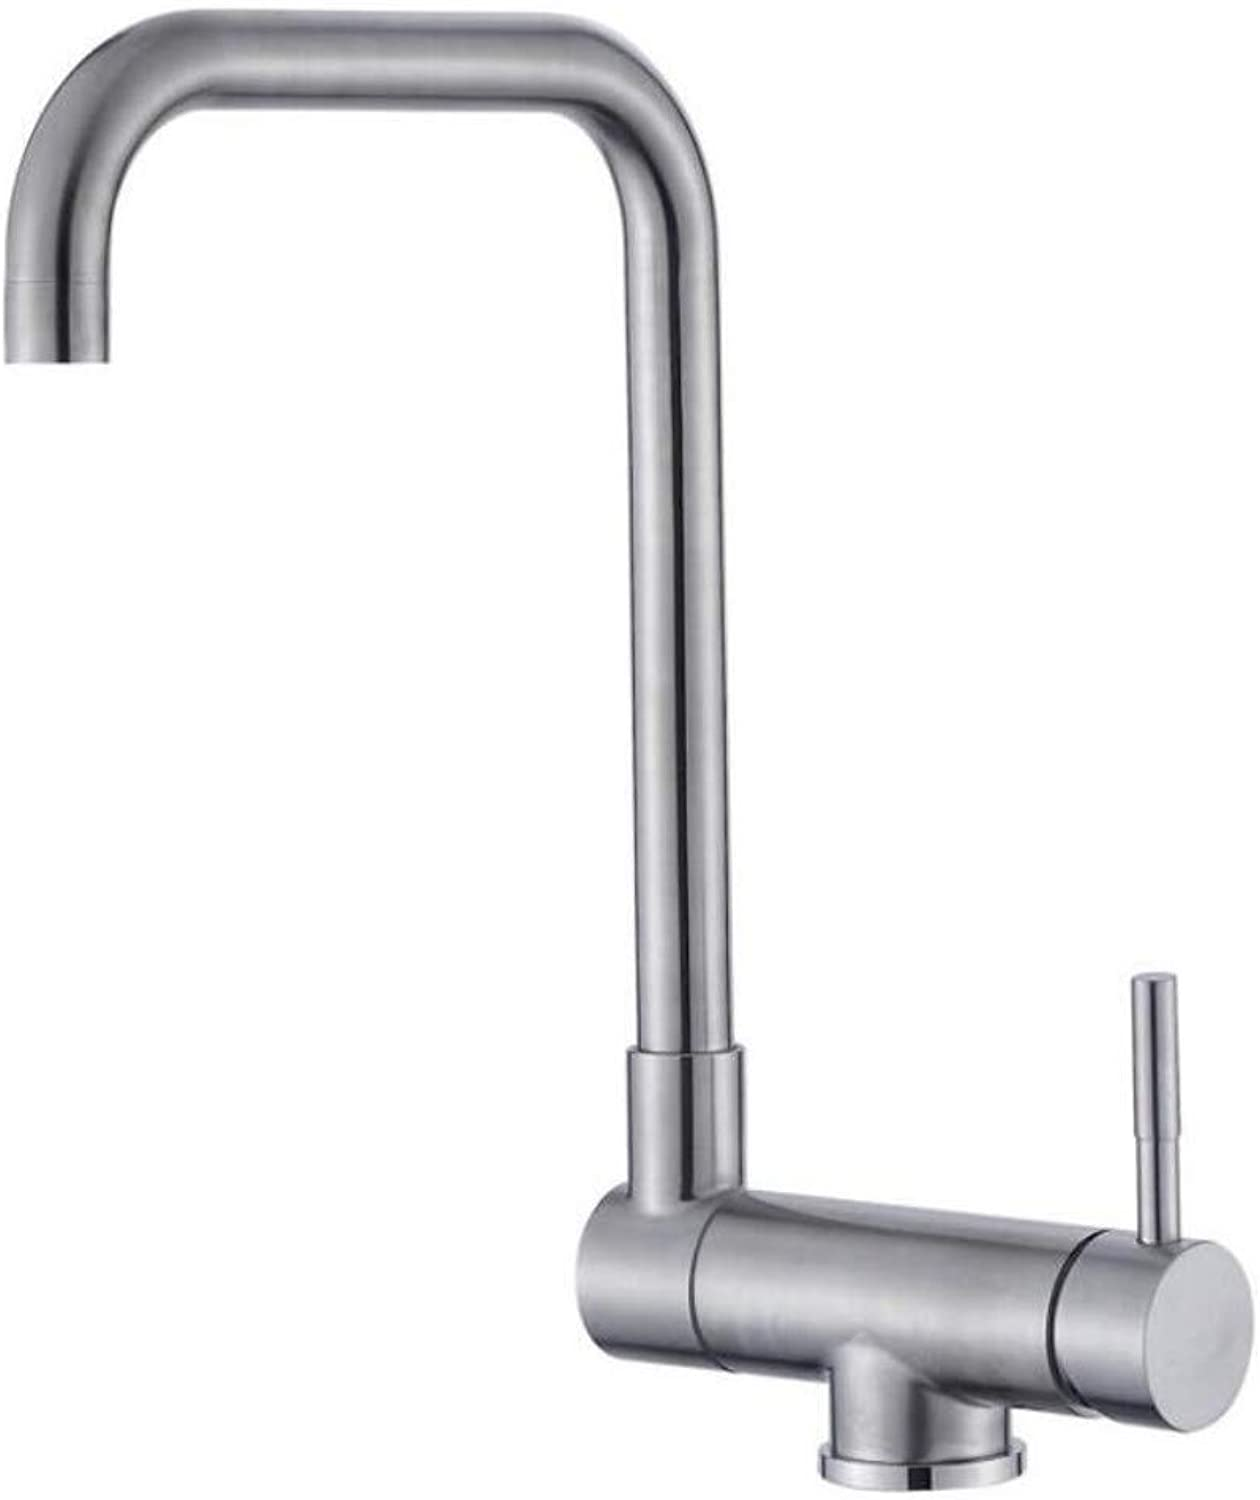 Bathroom Faucet 304 Stainless Steel Kitchen redating Faucet Folding Down Hot and Cold Water Faucet Sink Low Window Faucet